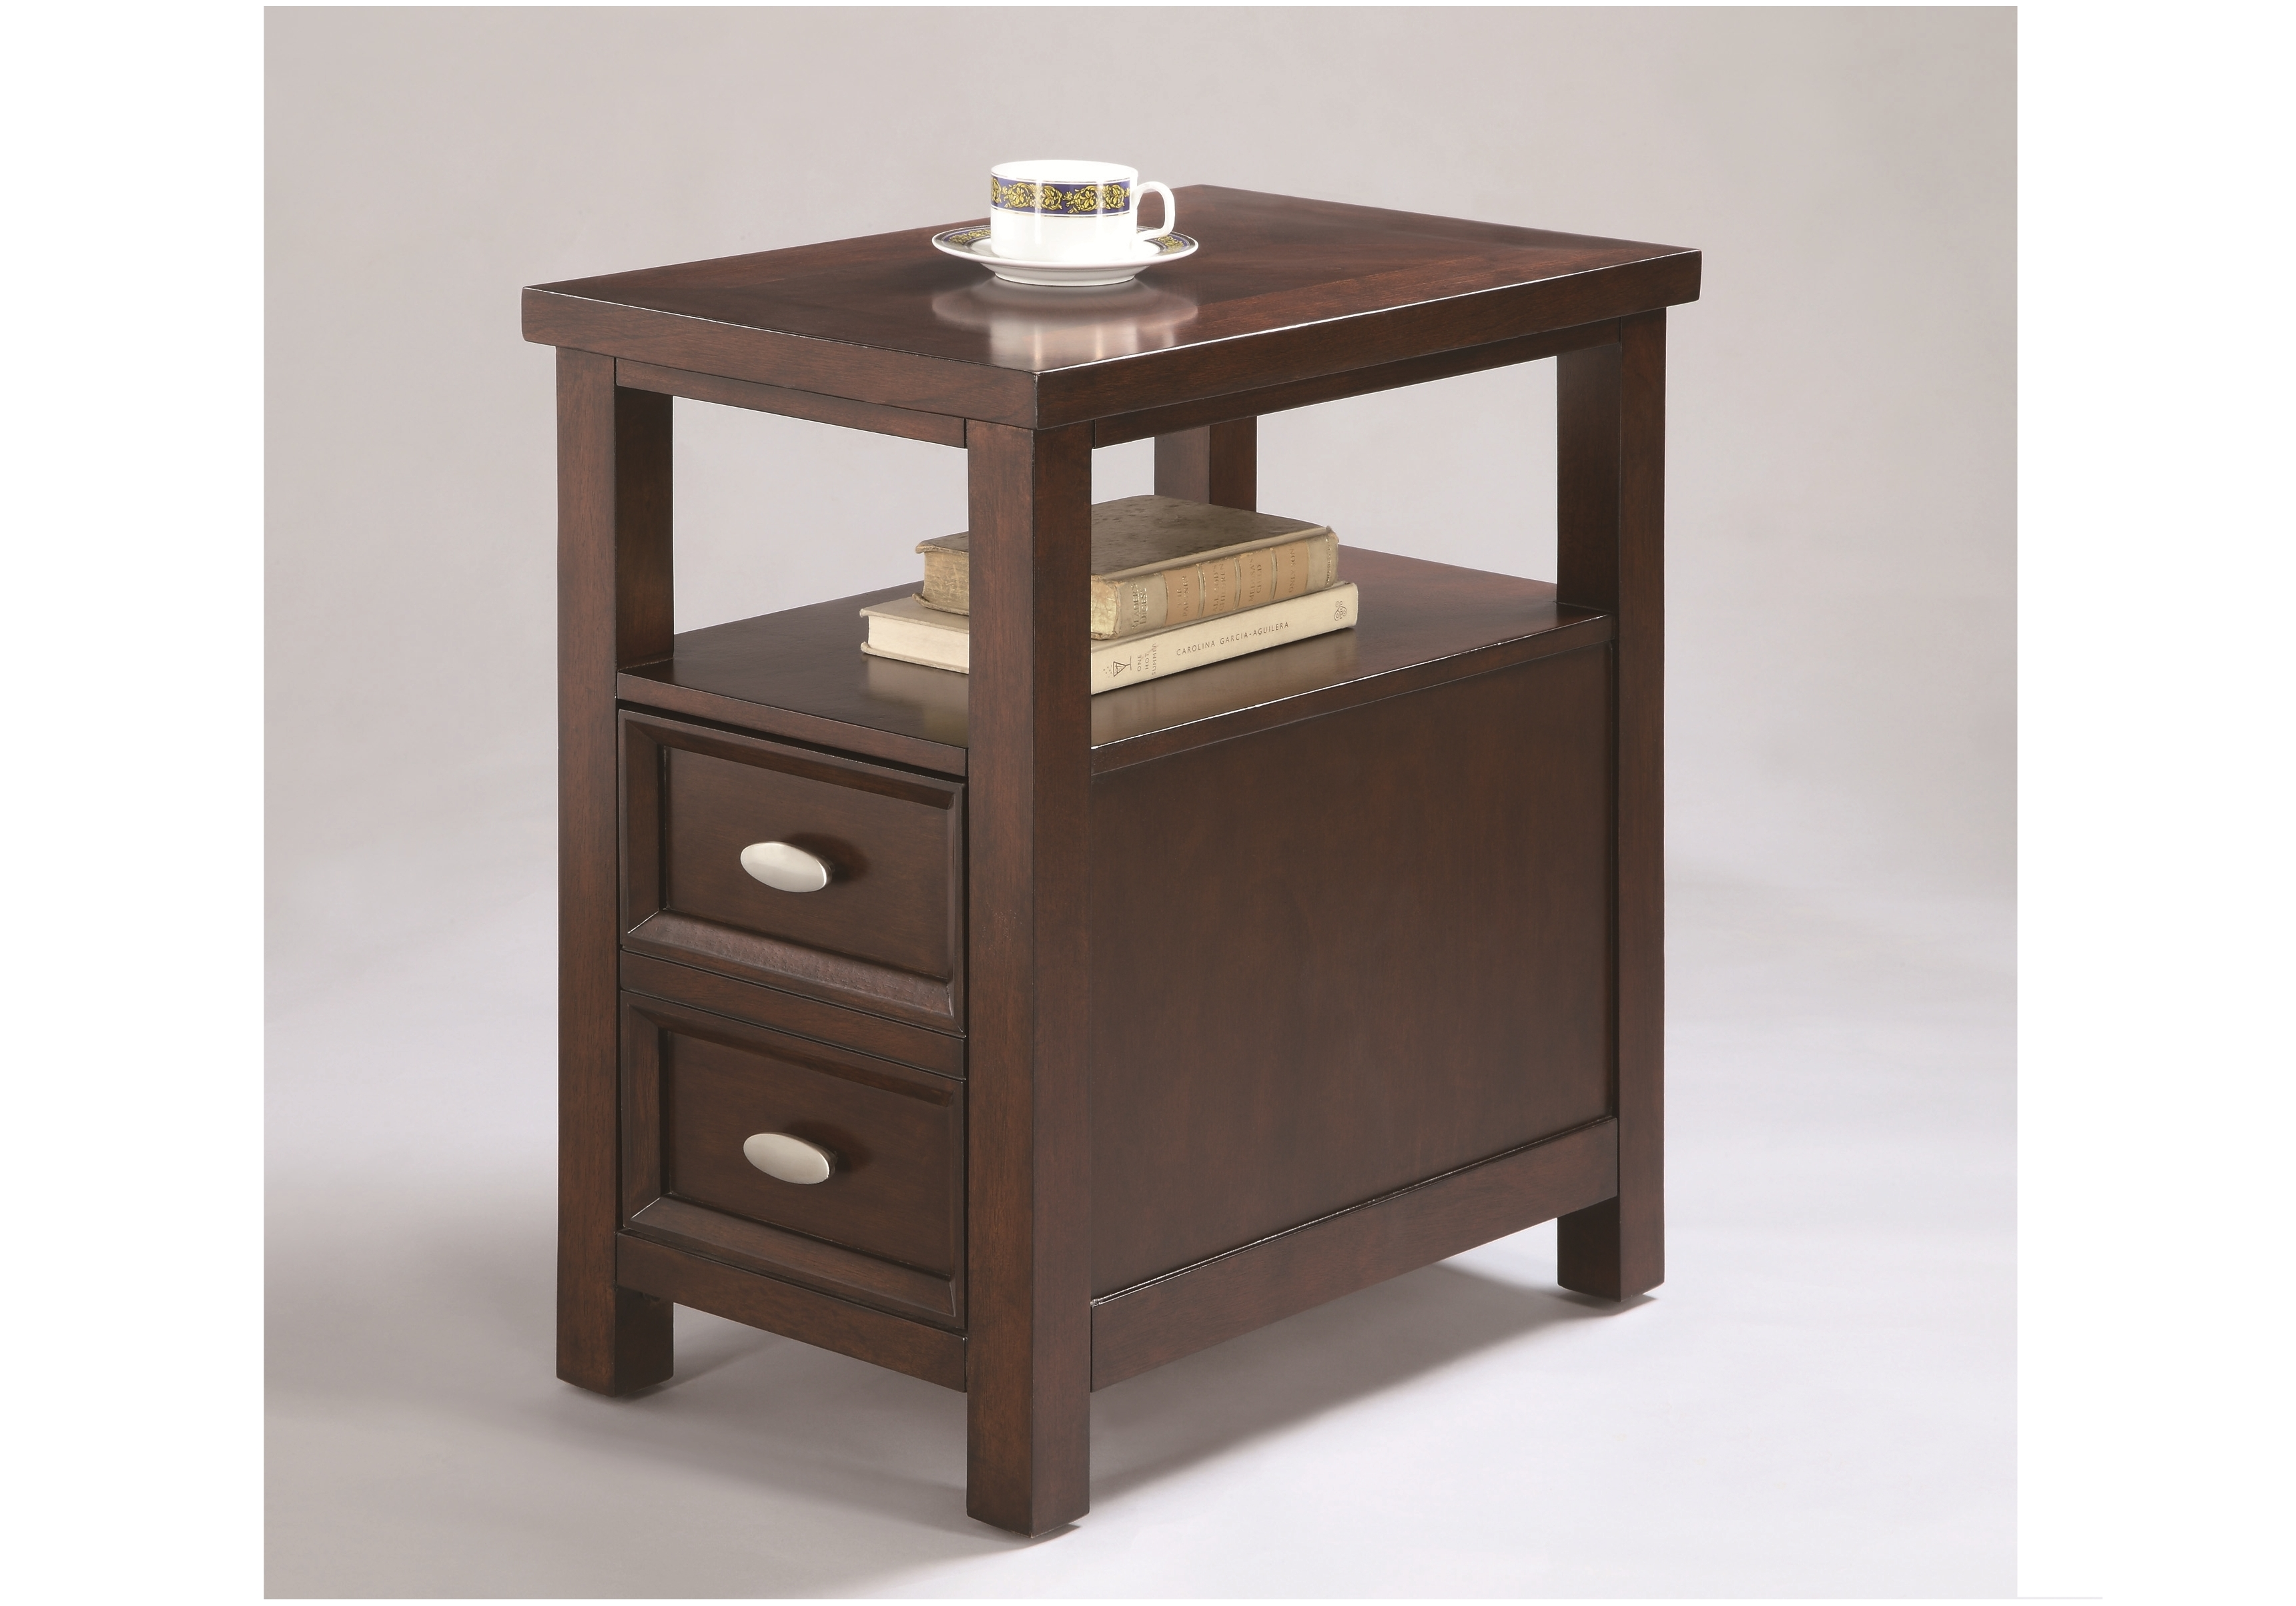 cm7204-chair-side-table-2